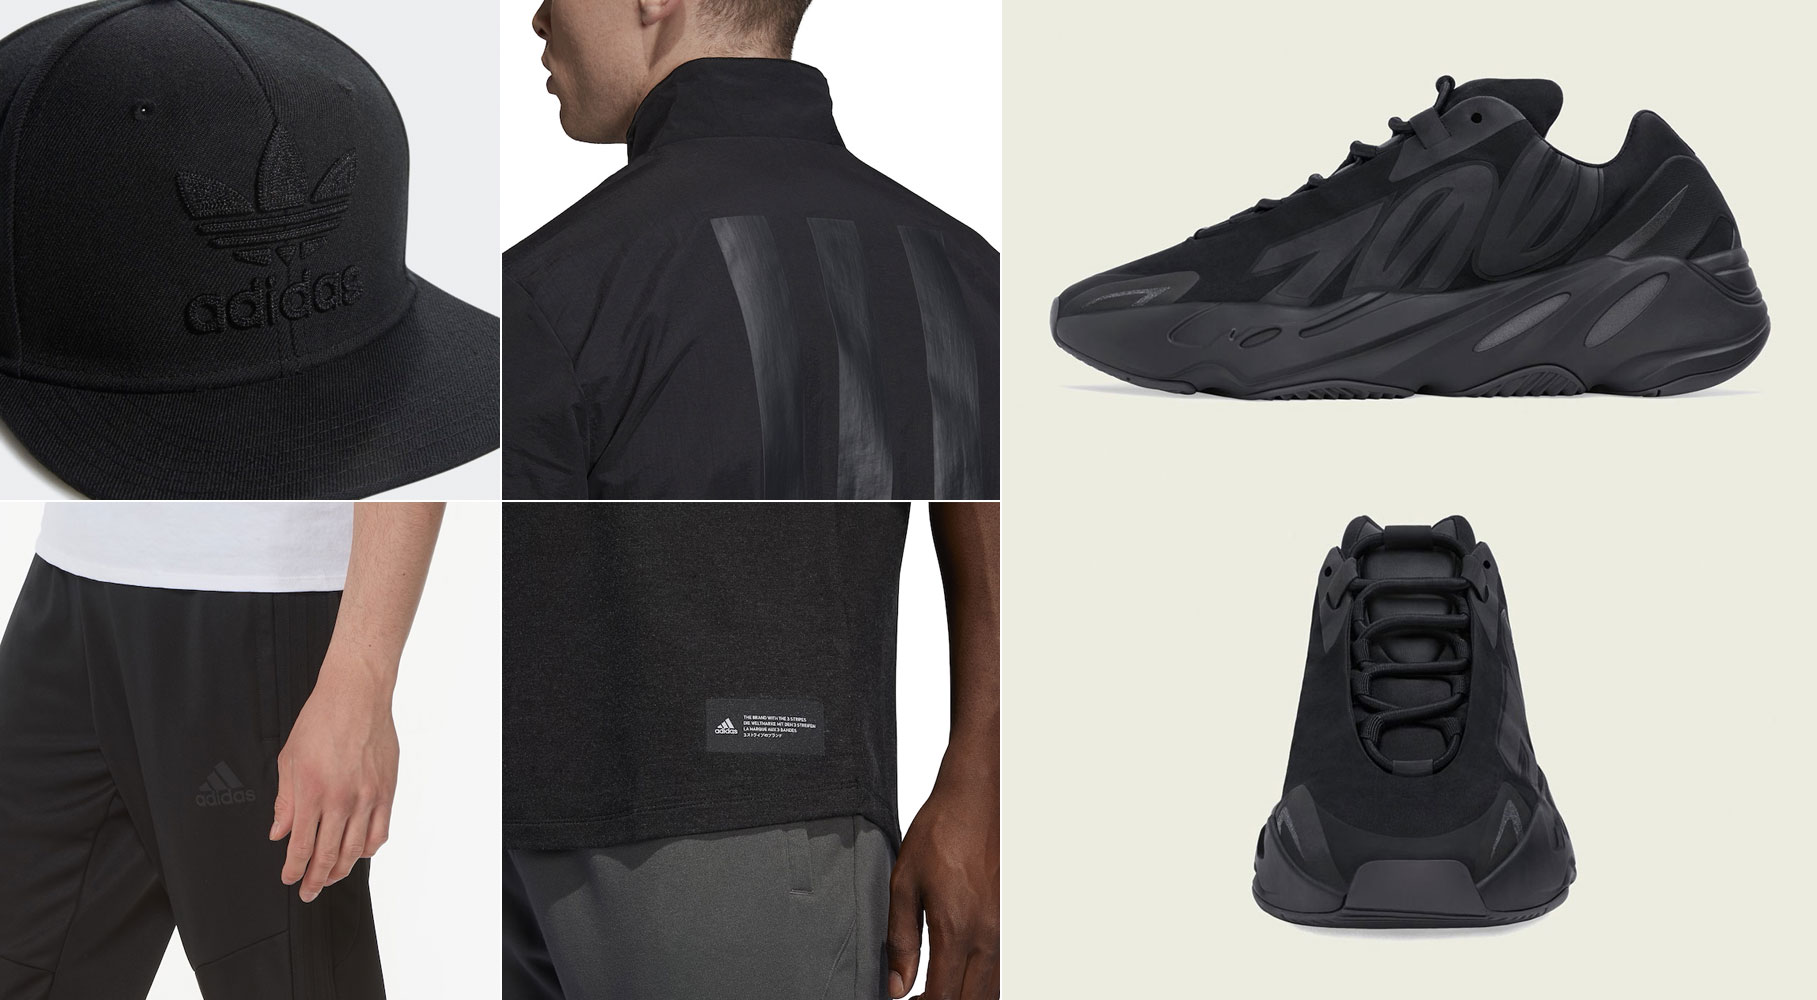 yeezy-700-mnvn-triple-black-clothing-match